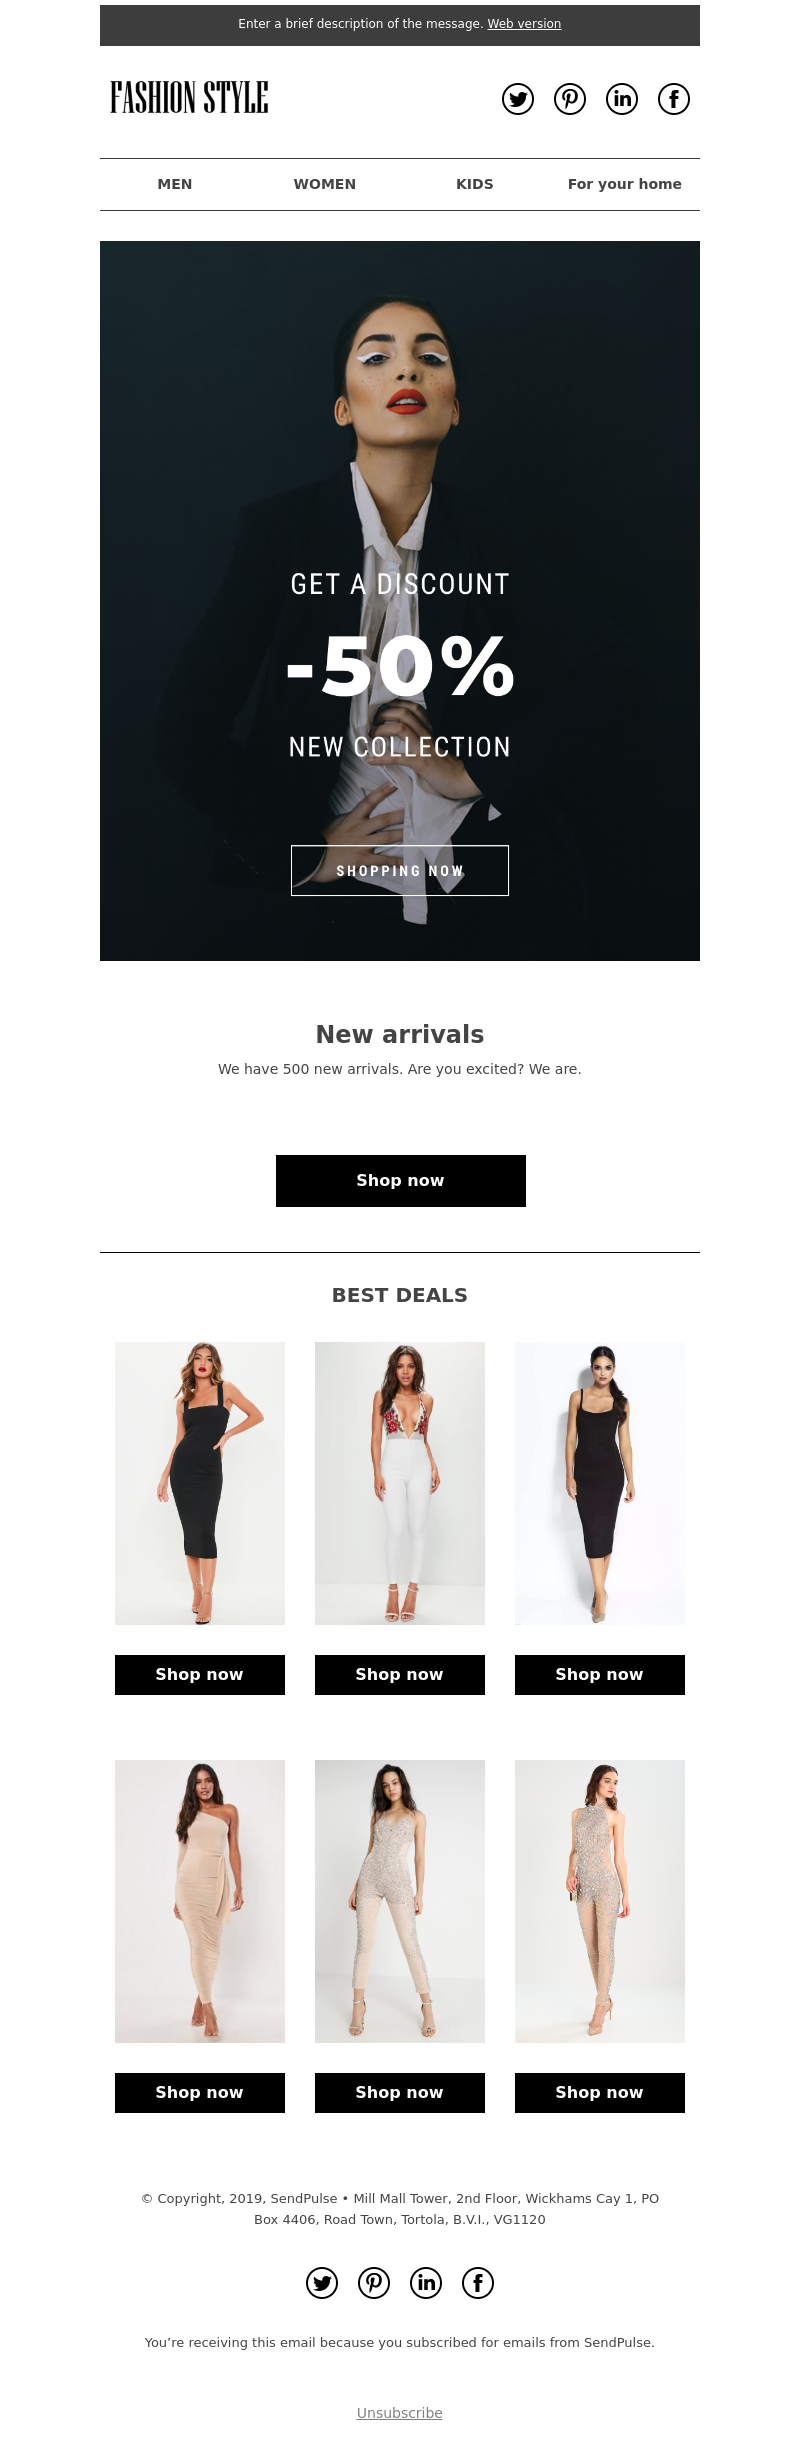 Ecommerce free email template